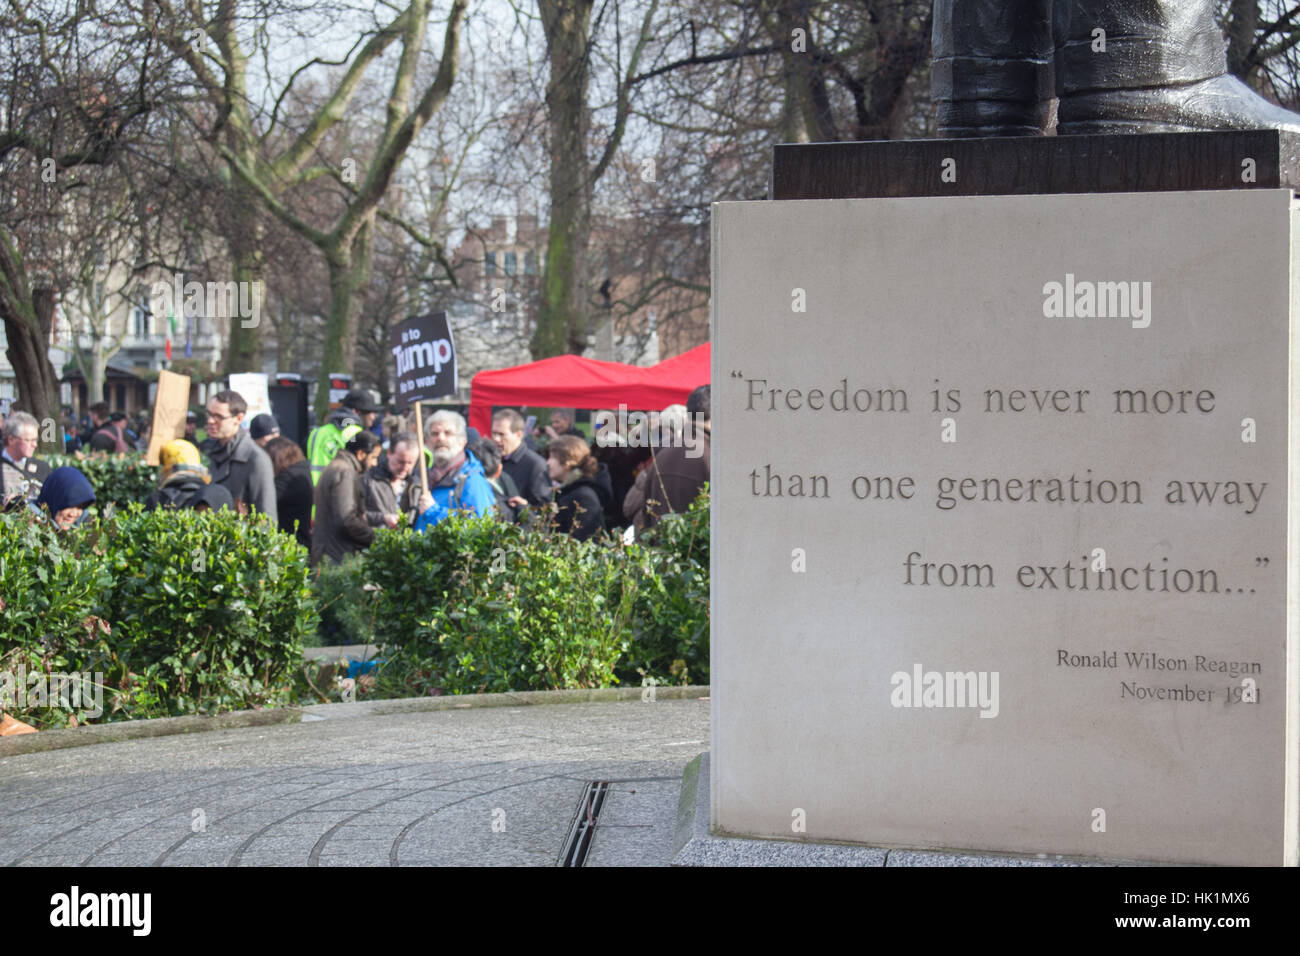 4th February, 2017. Regan Statue And Quote On Freedom At 4th Feb 2017  London March Against Donald Trump Credit: Pauline A Yates/Alamy Live News